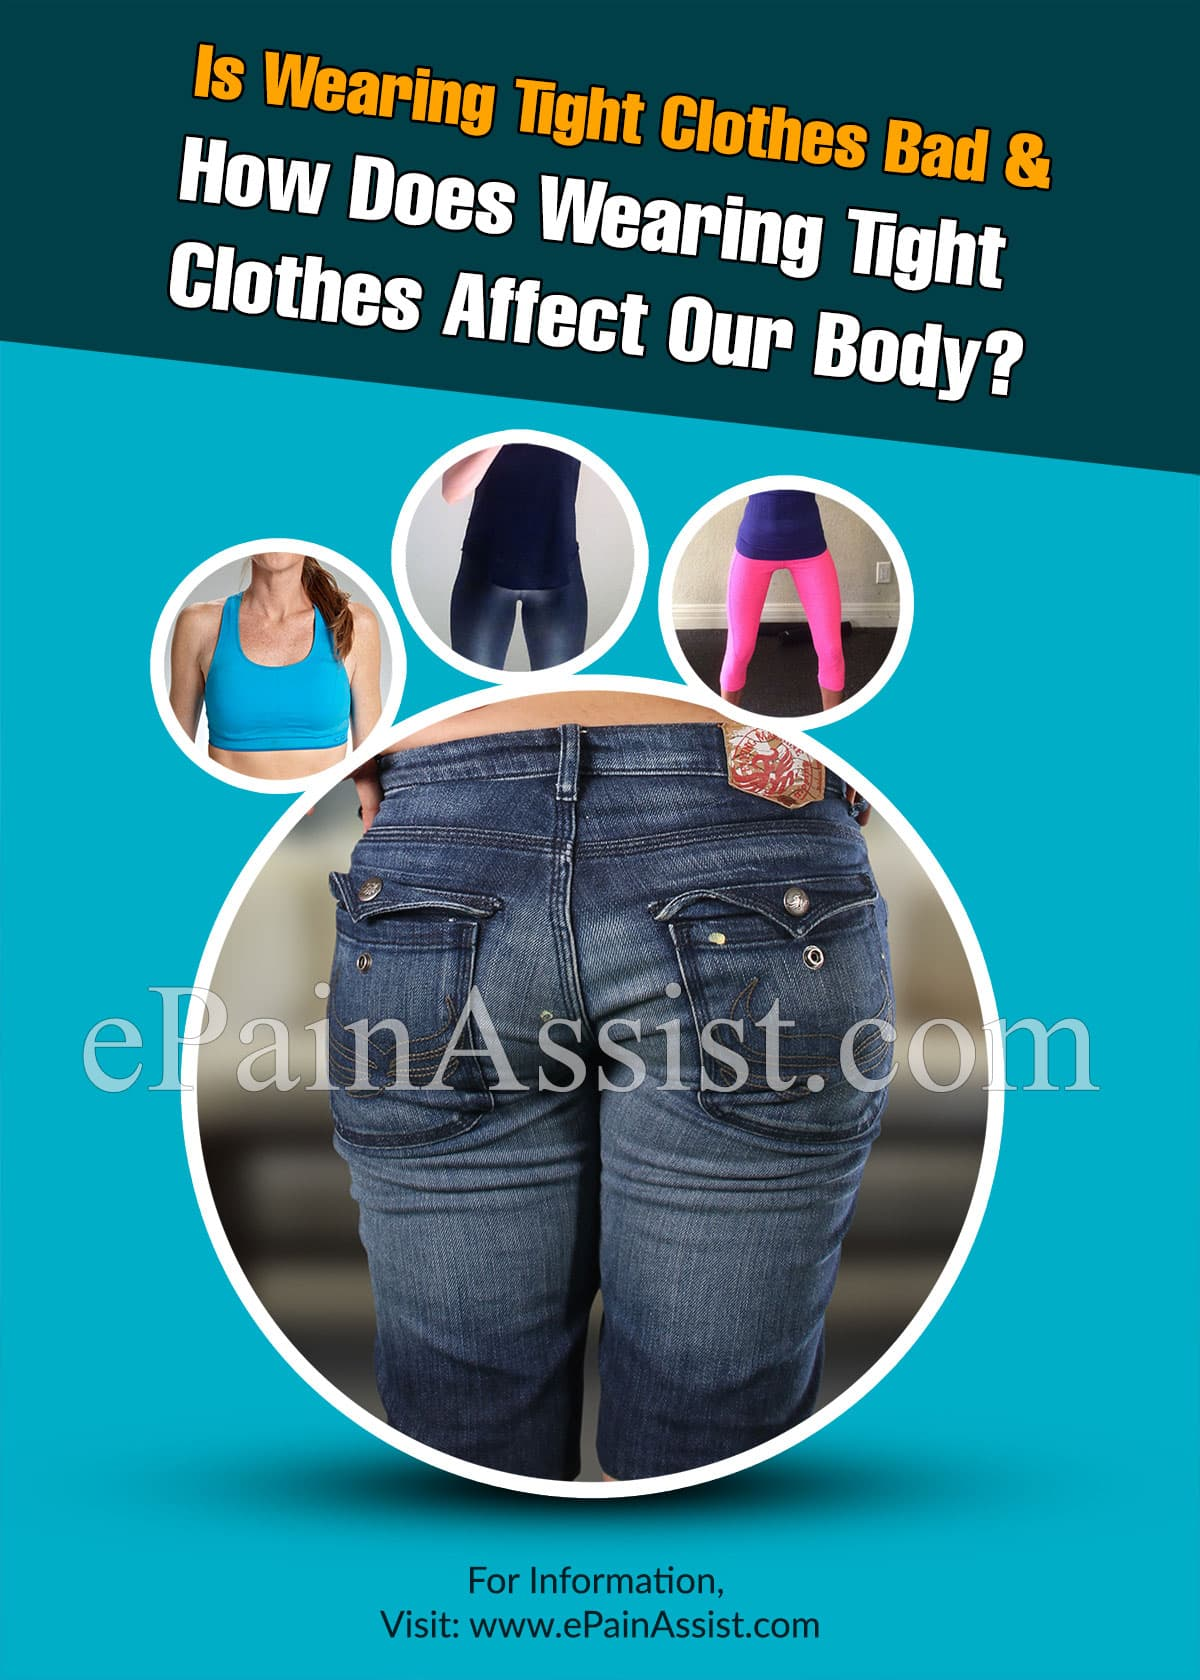 Is Wearing Tight Clothes Bad & How Does Wearing Tight Clothes Affect Our Body?